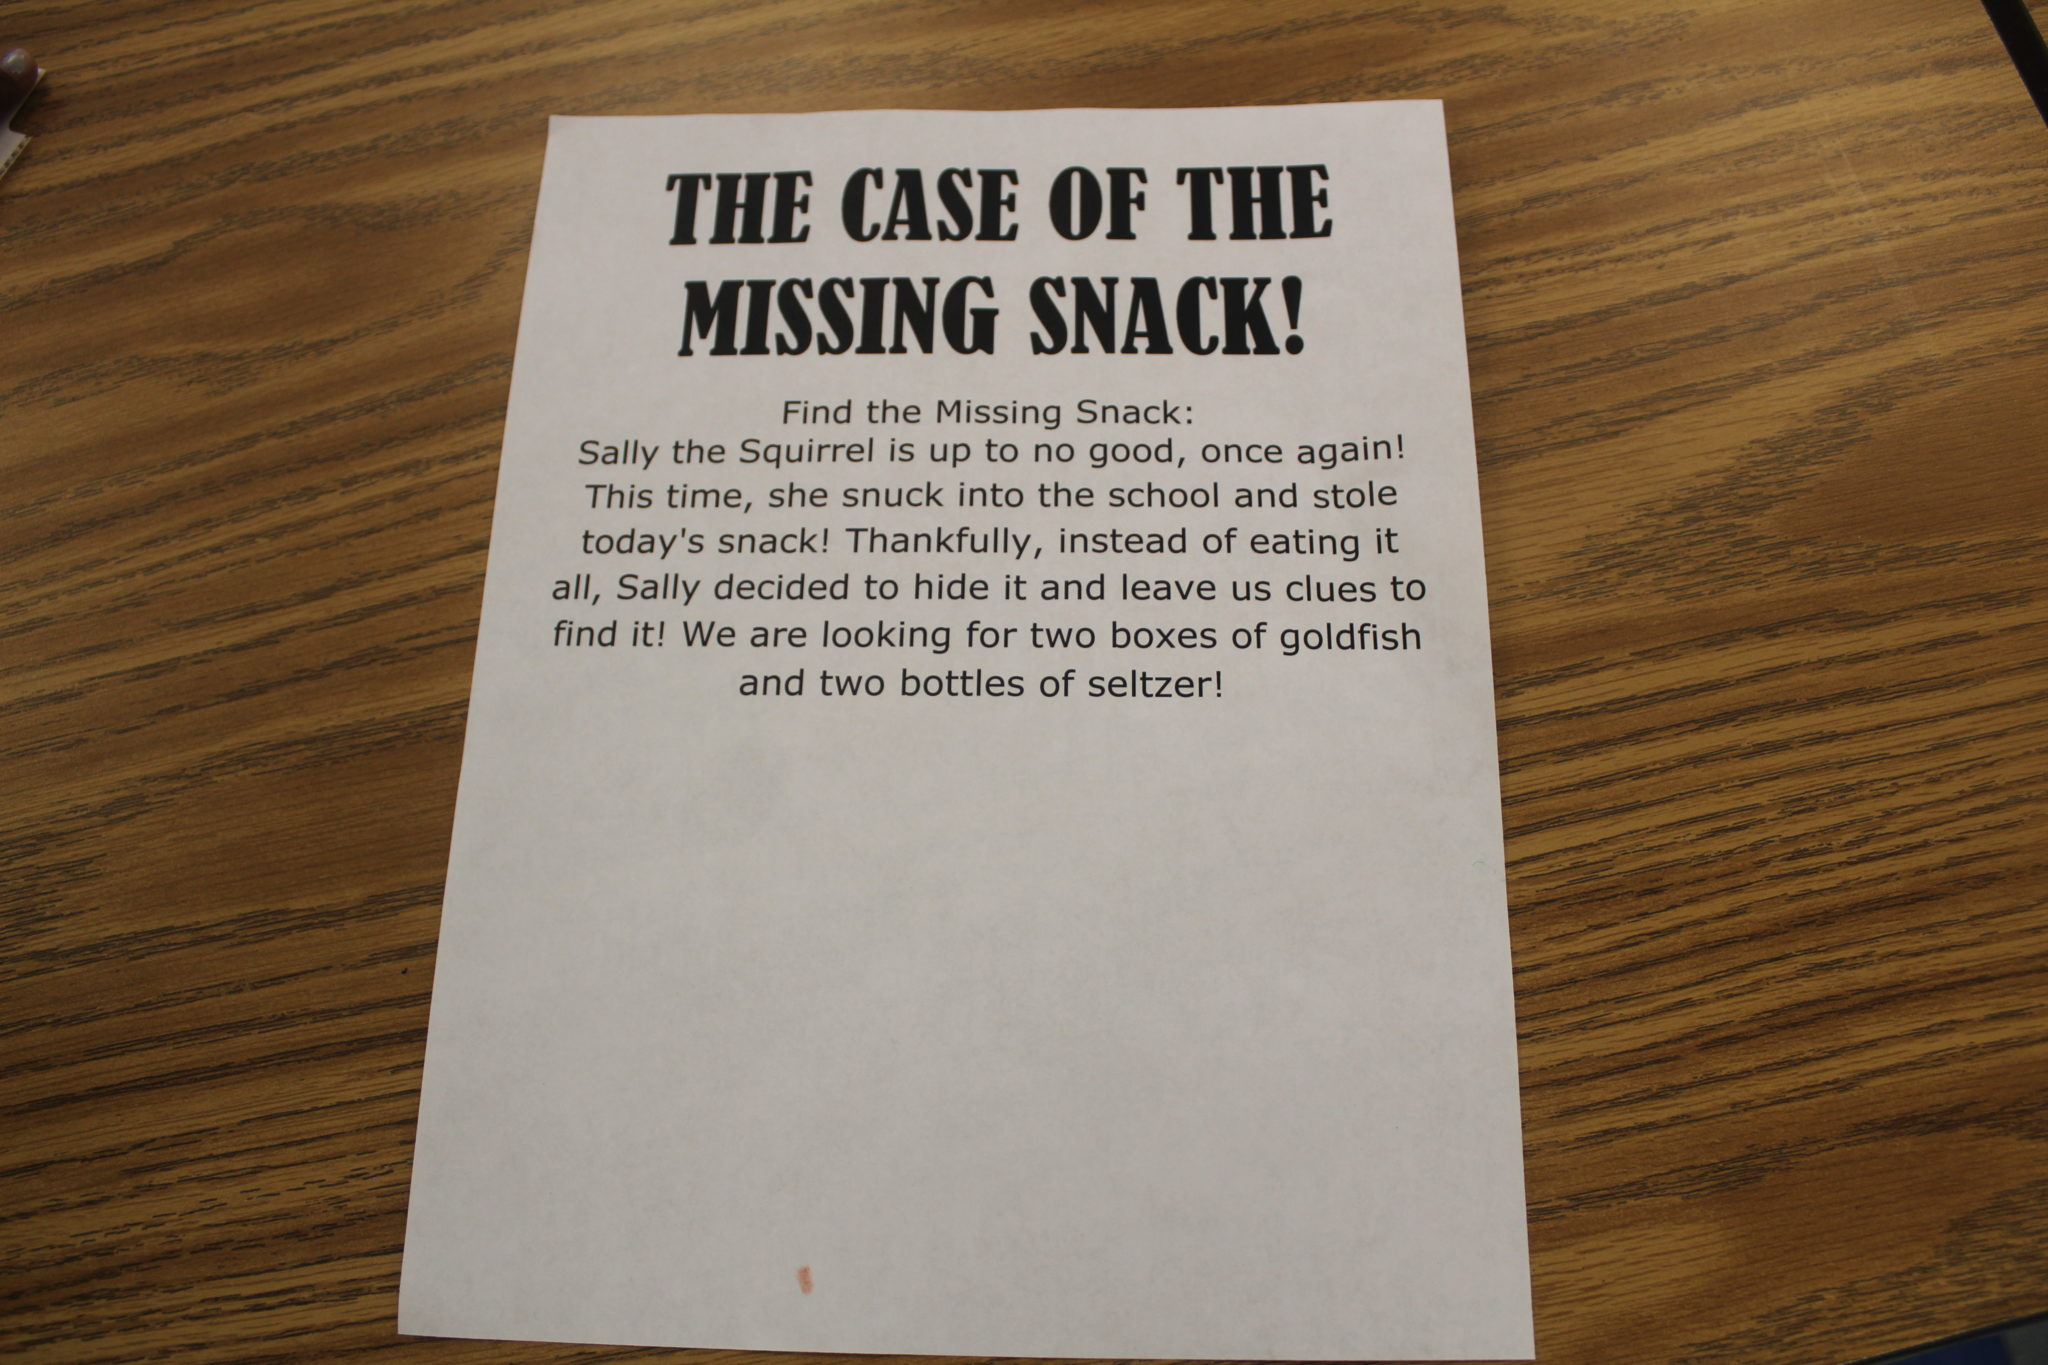 The Case of the Missing Snack